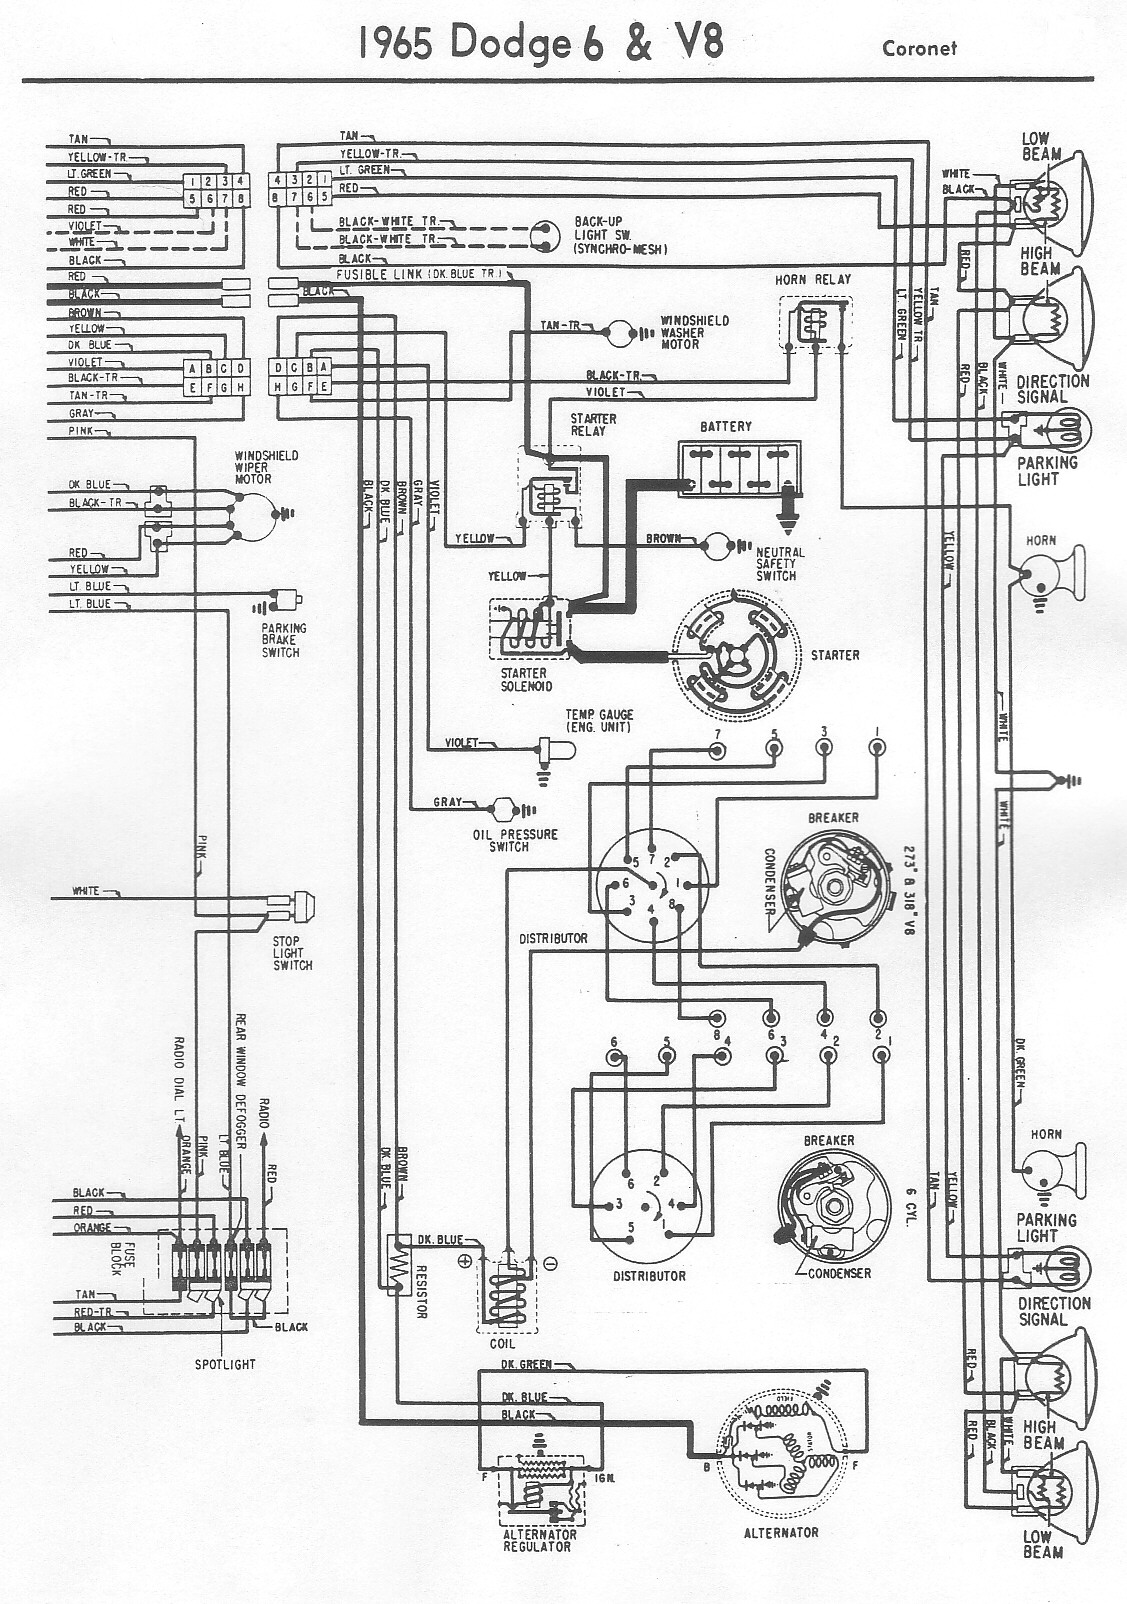 medium resolution of 1965 dodge wiring diagram wiring diagram img 1965 dodge coronet wiring diagram